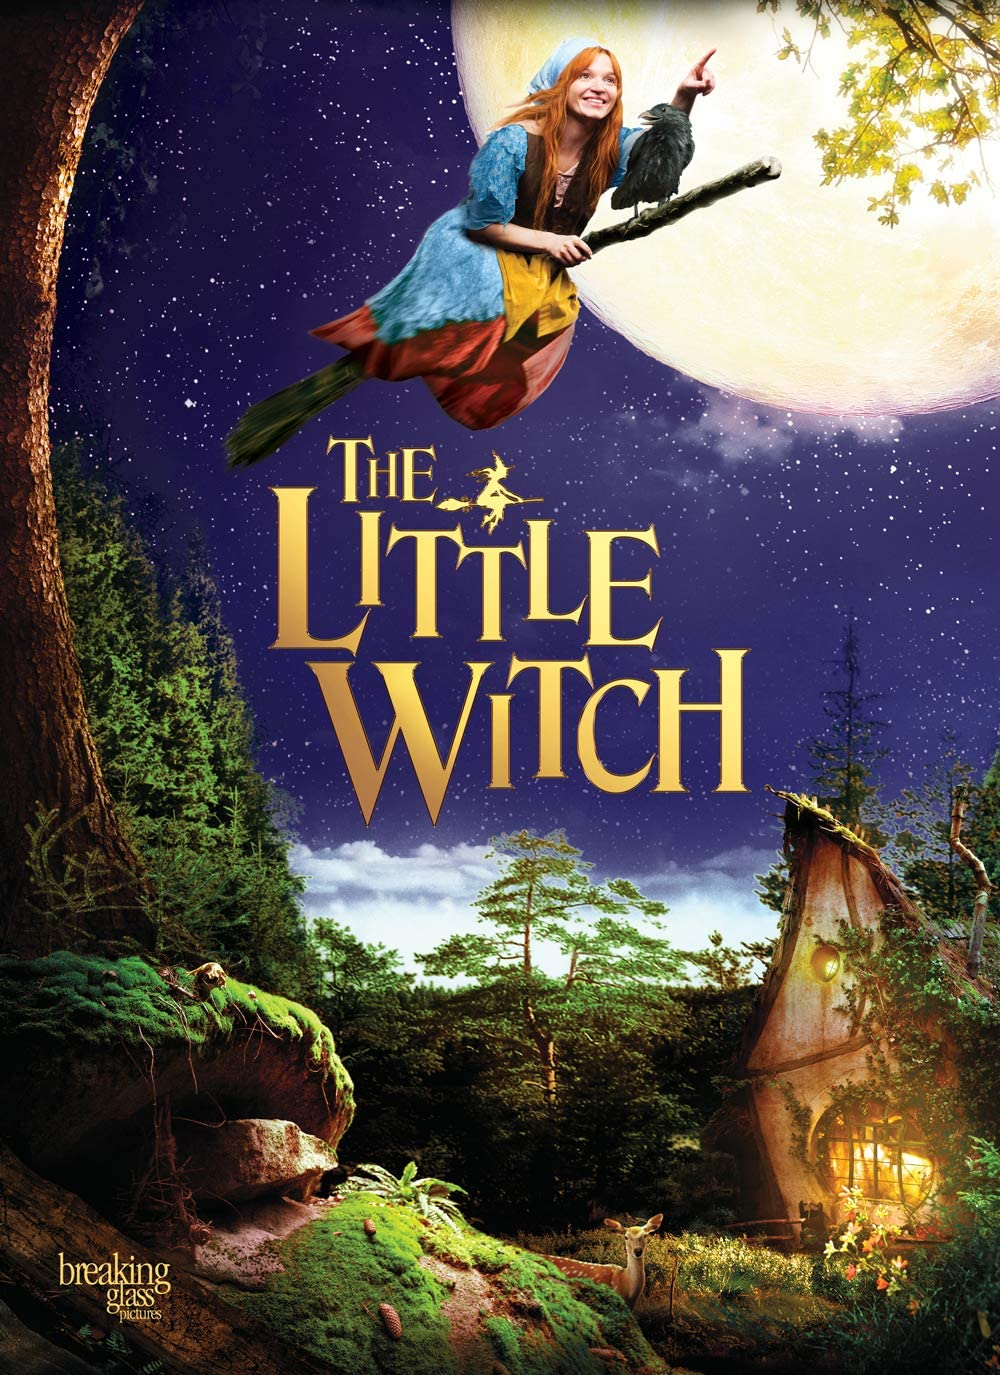 movie poster for The Little Witch